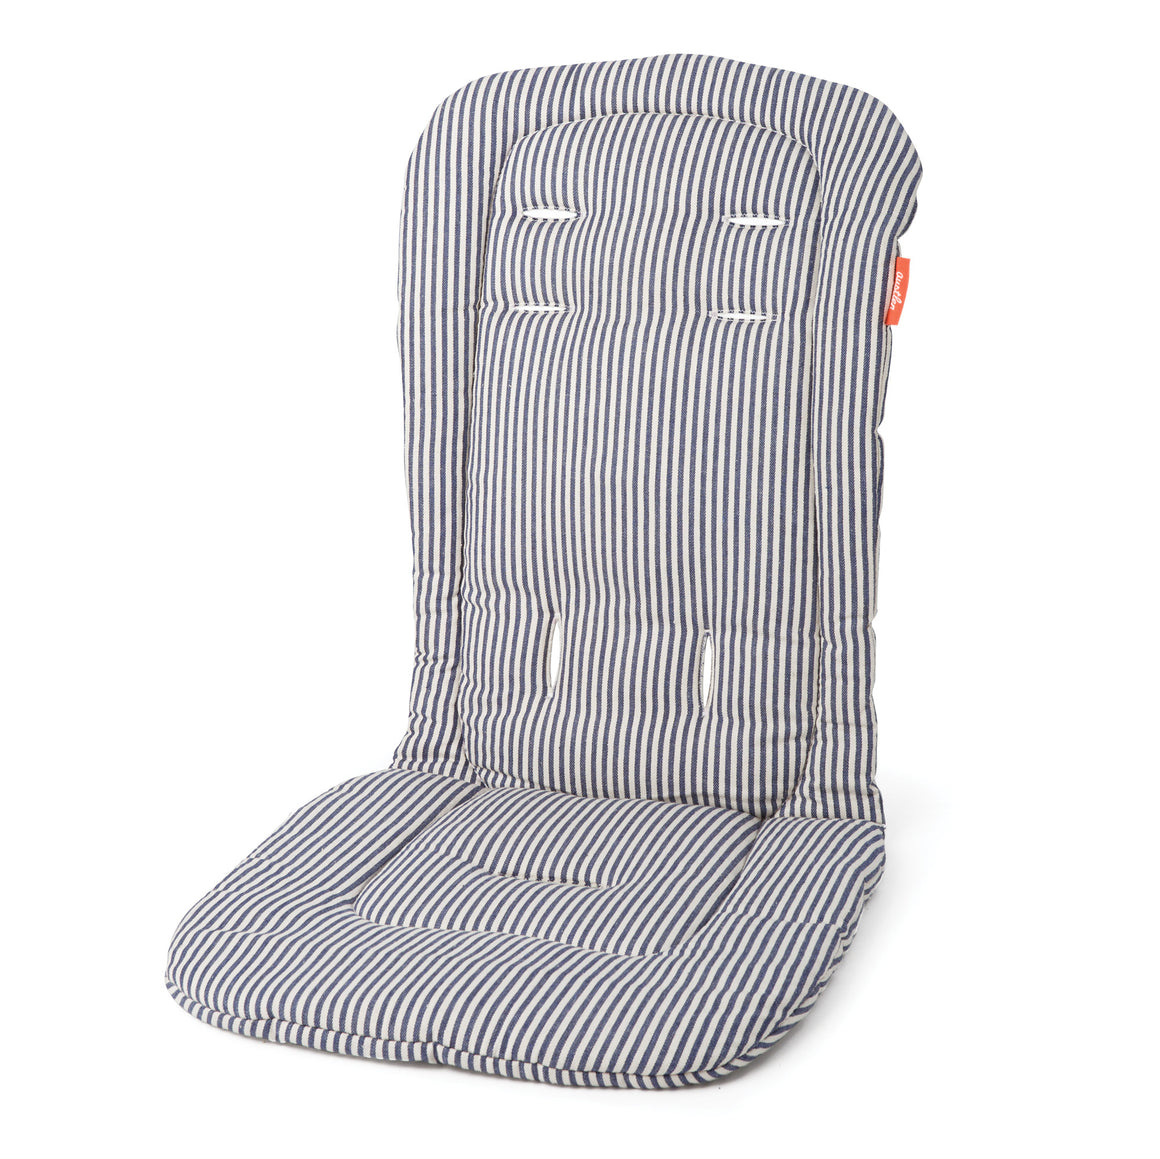 Austlen BABY co. Seat Liner - Second Seat in Navy Stripe